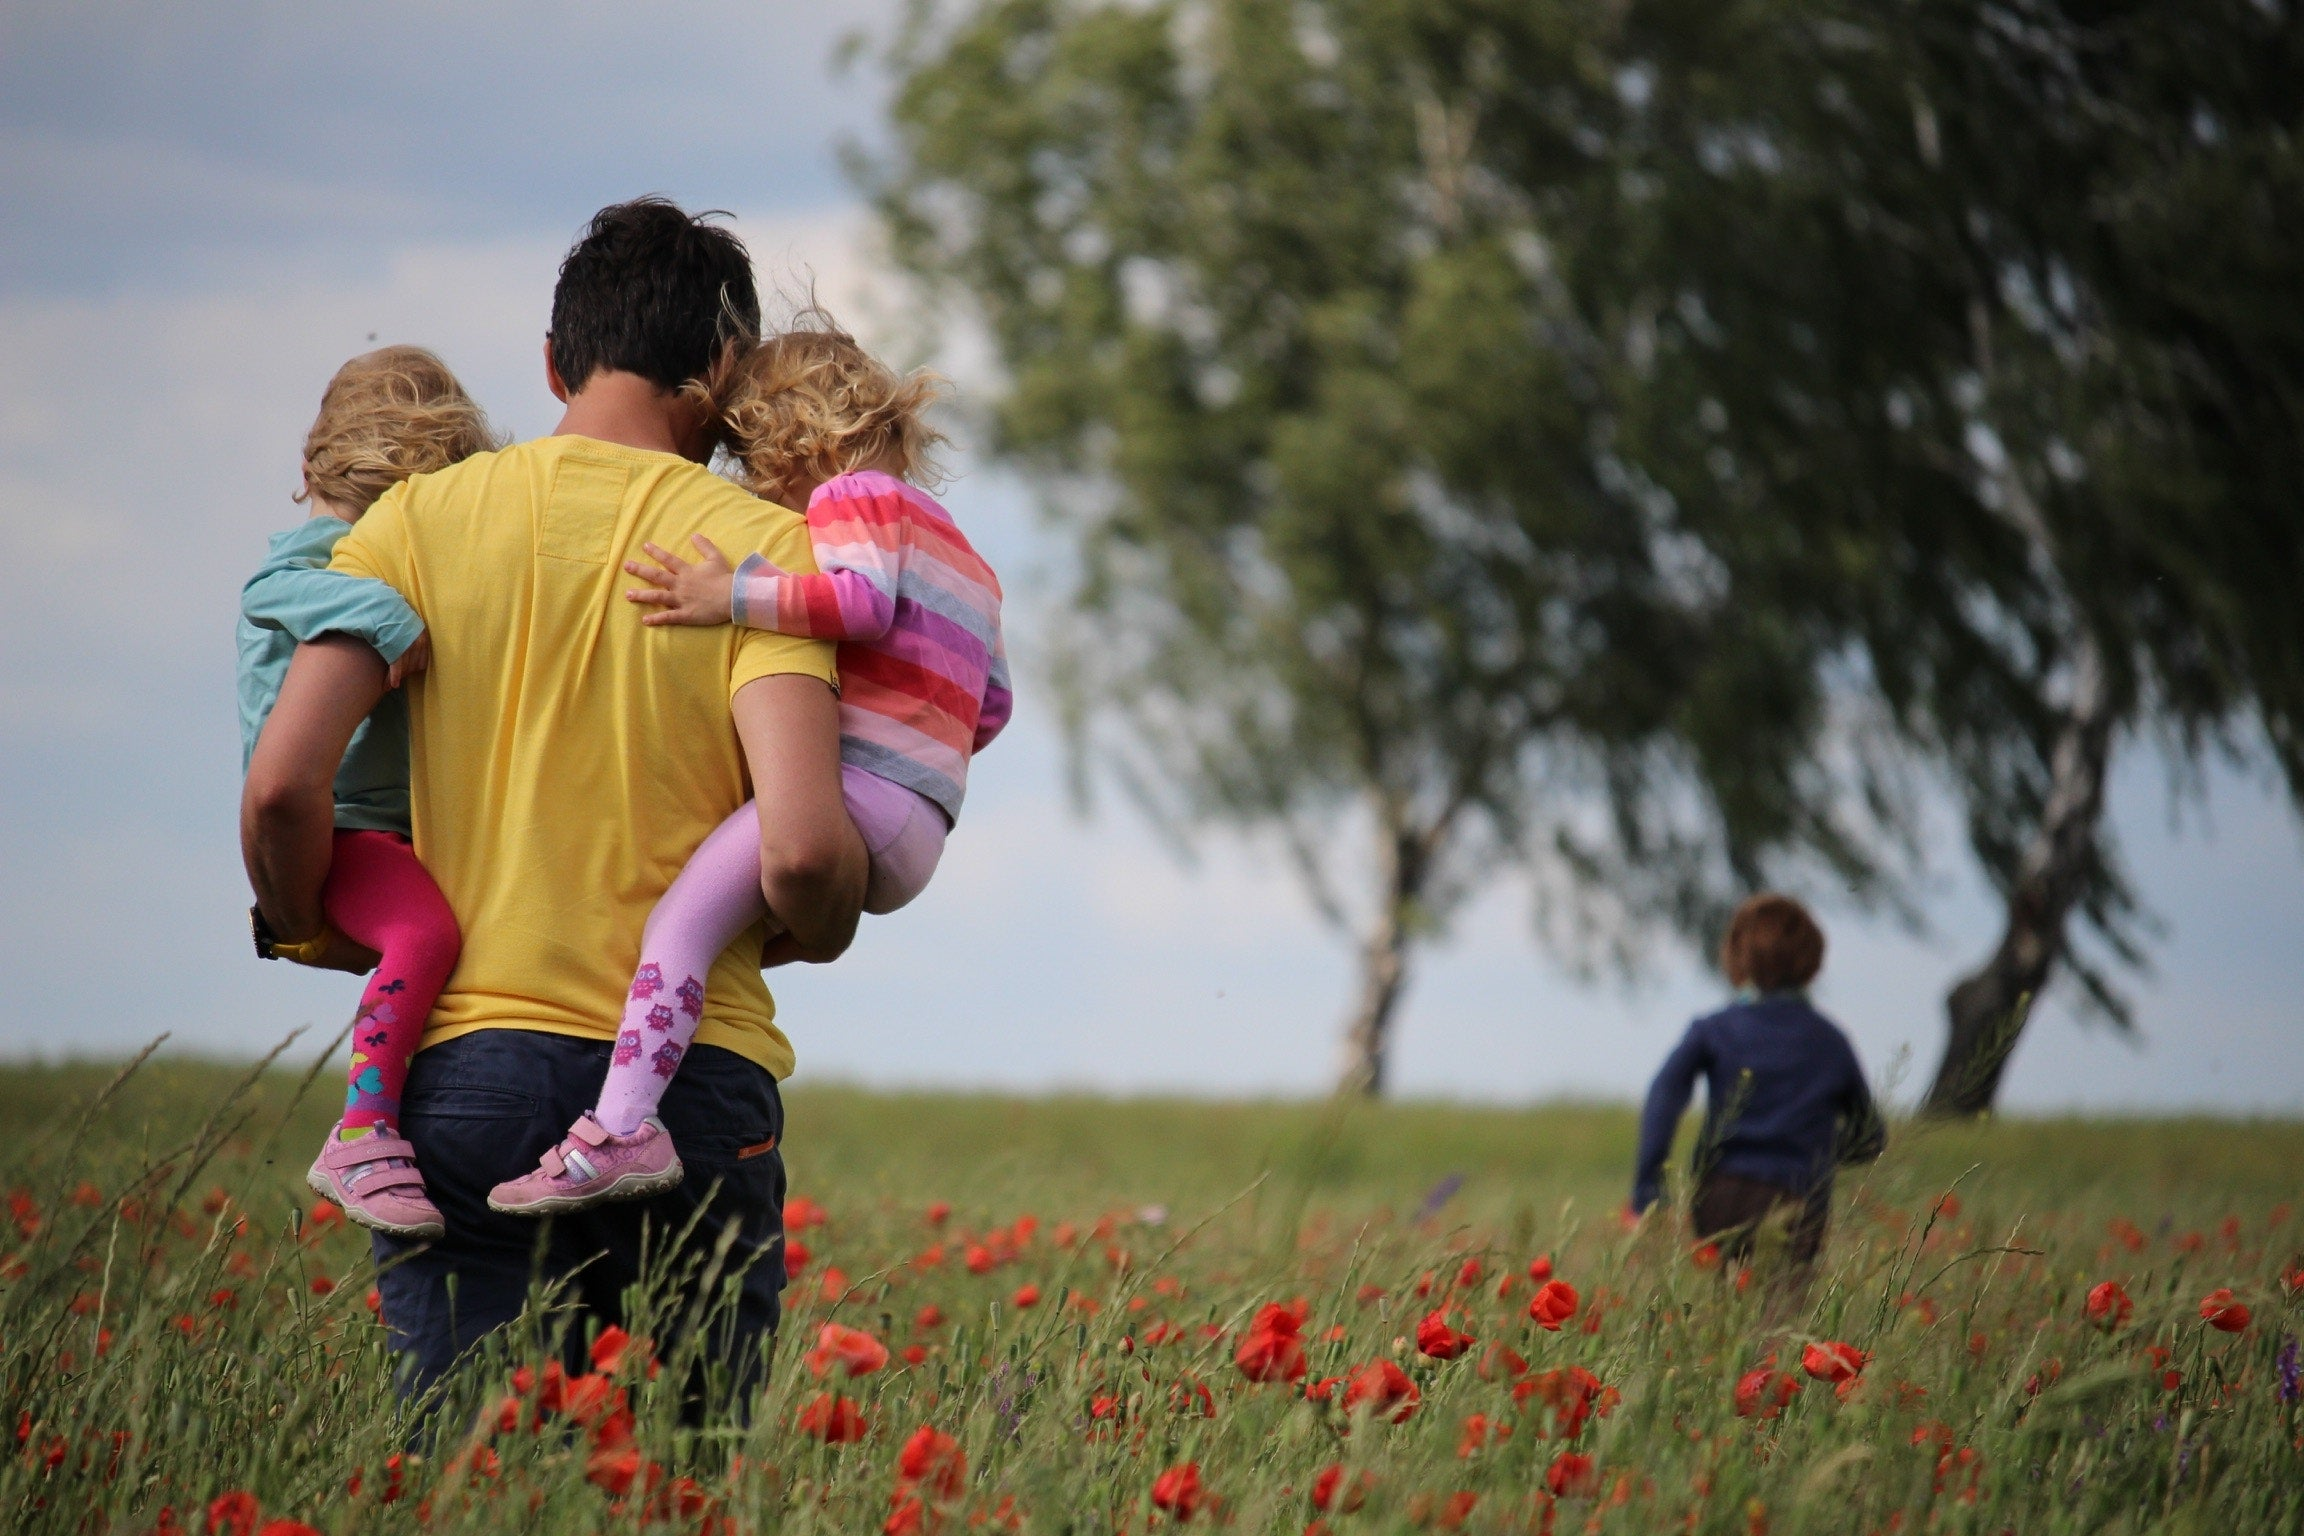 Adult Carrying Two Kids in a Field With Third Kid in The Distance by a Tree